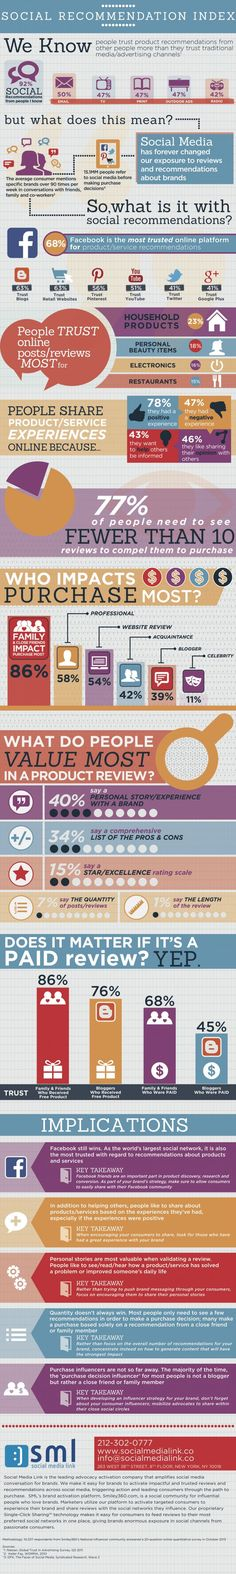 SOCIAL MEDIA -         Social Recommendation Index #infographic.